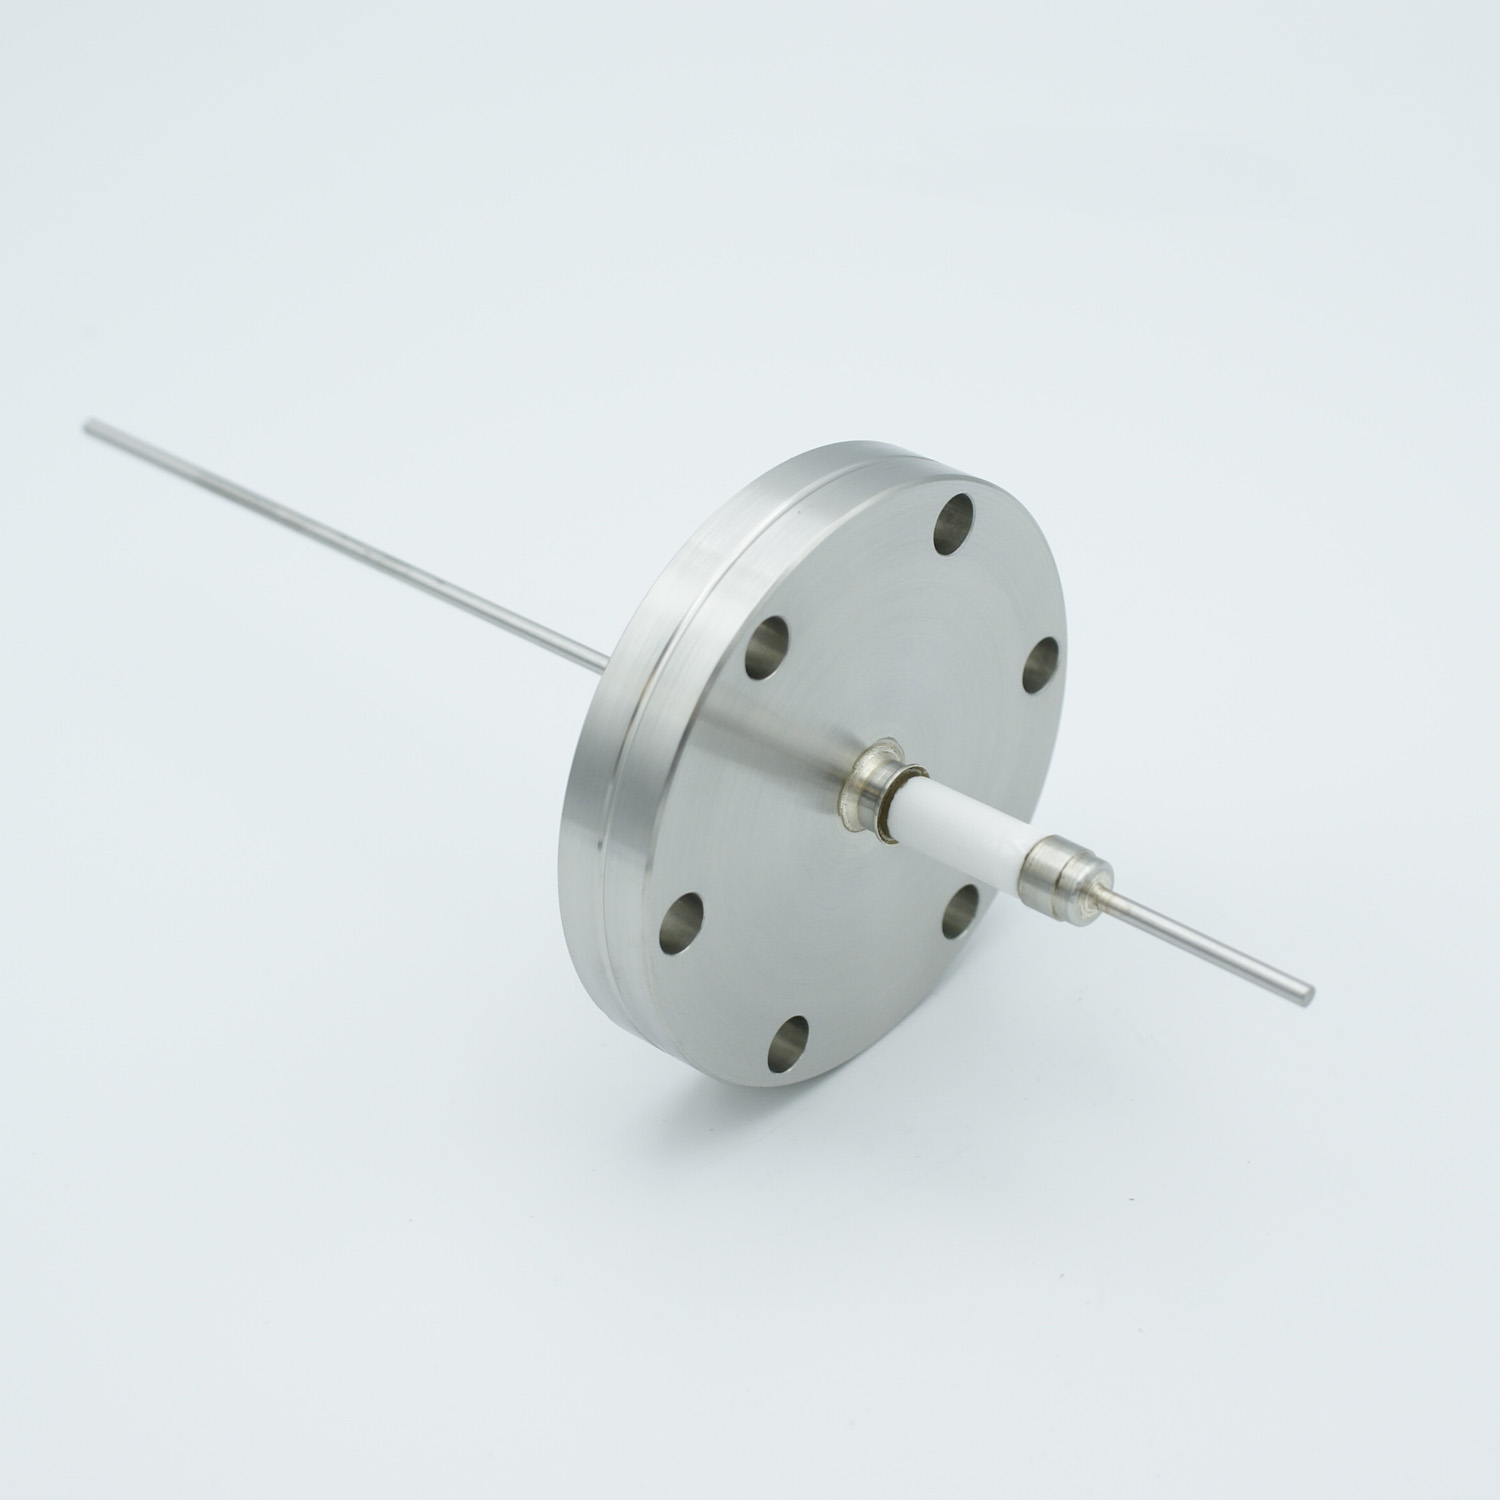 1 pin high voltage feedthrough 10000Volt / 15 Amp. Nickel conductor, DN40CF flange